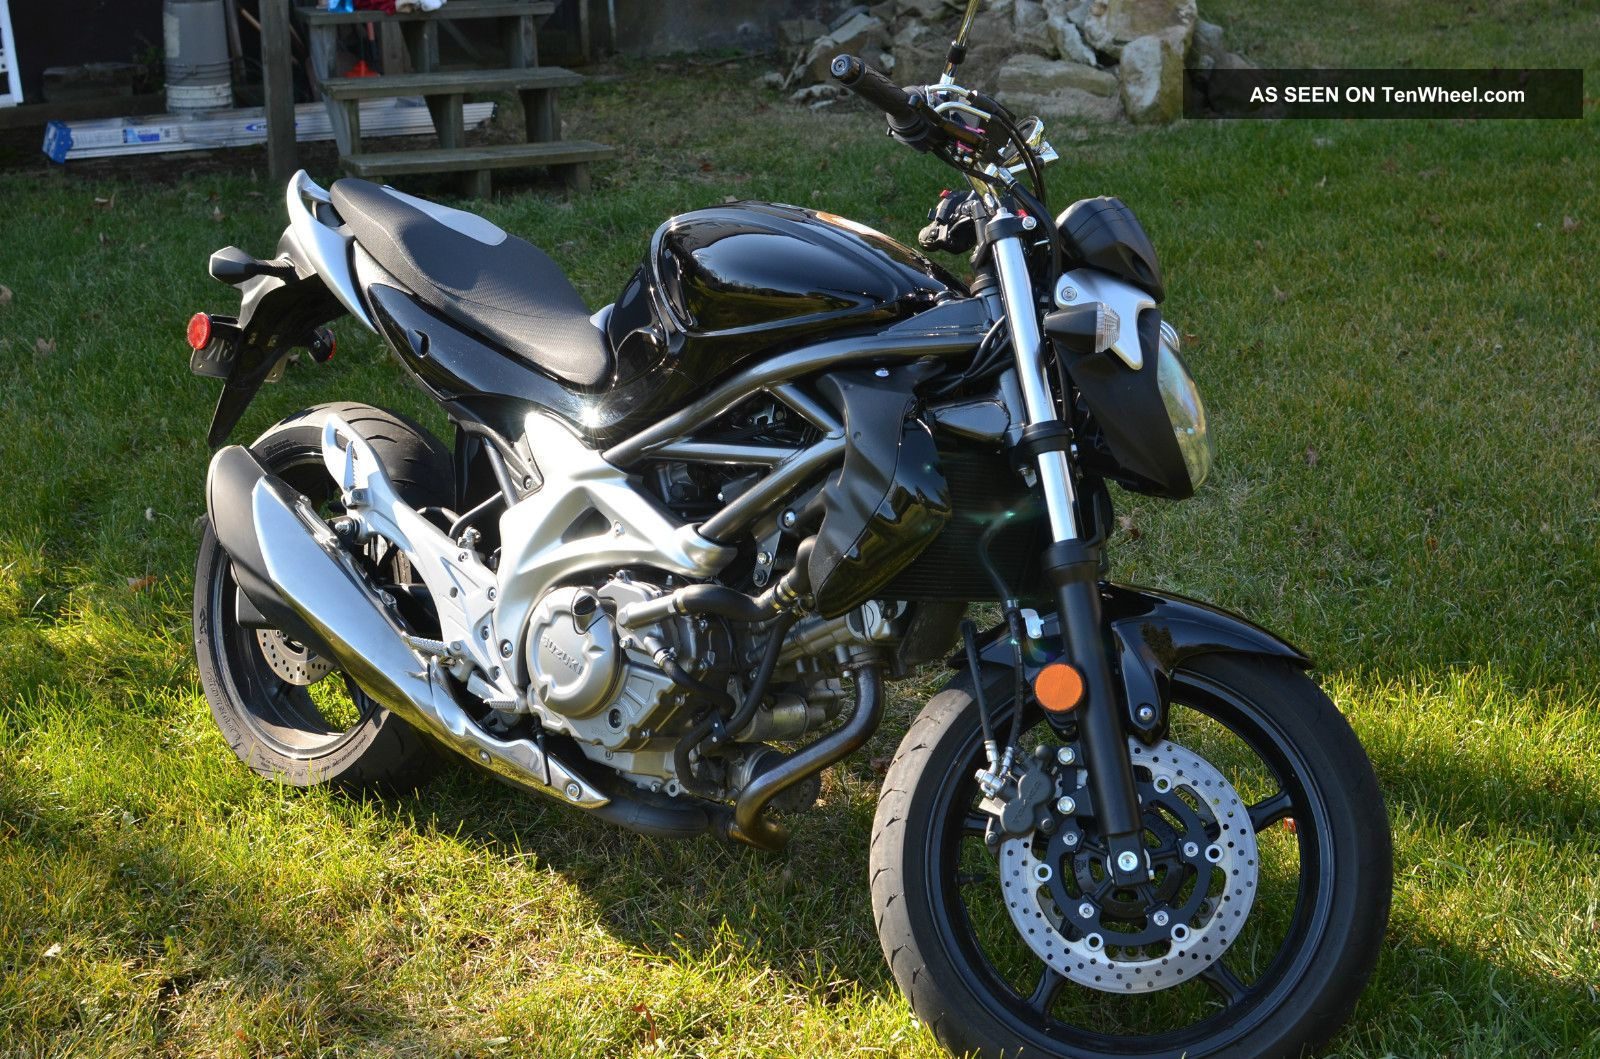 Suzuki Gladius Sv650 Sfv650 2009 Black Silver SV photo